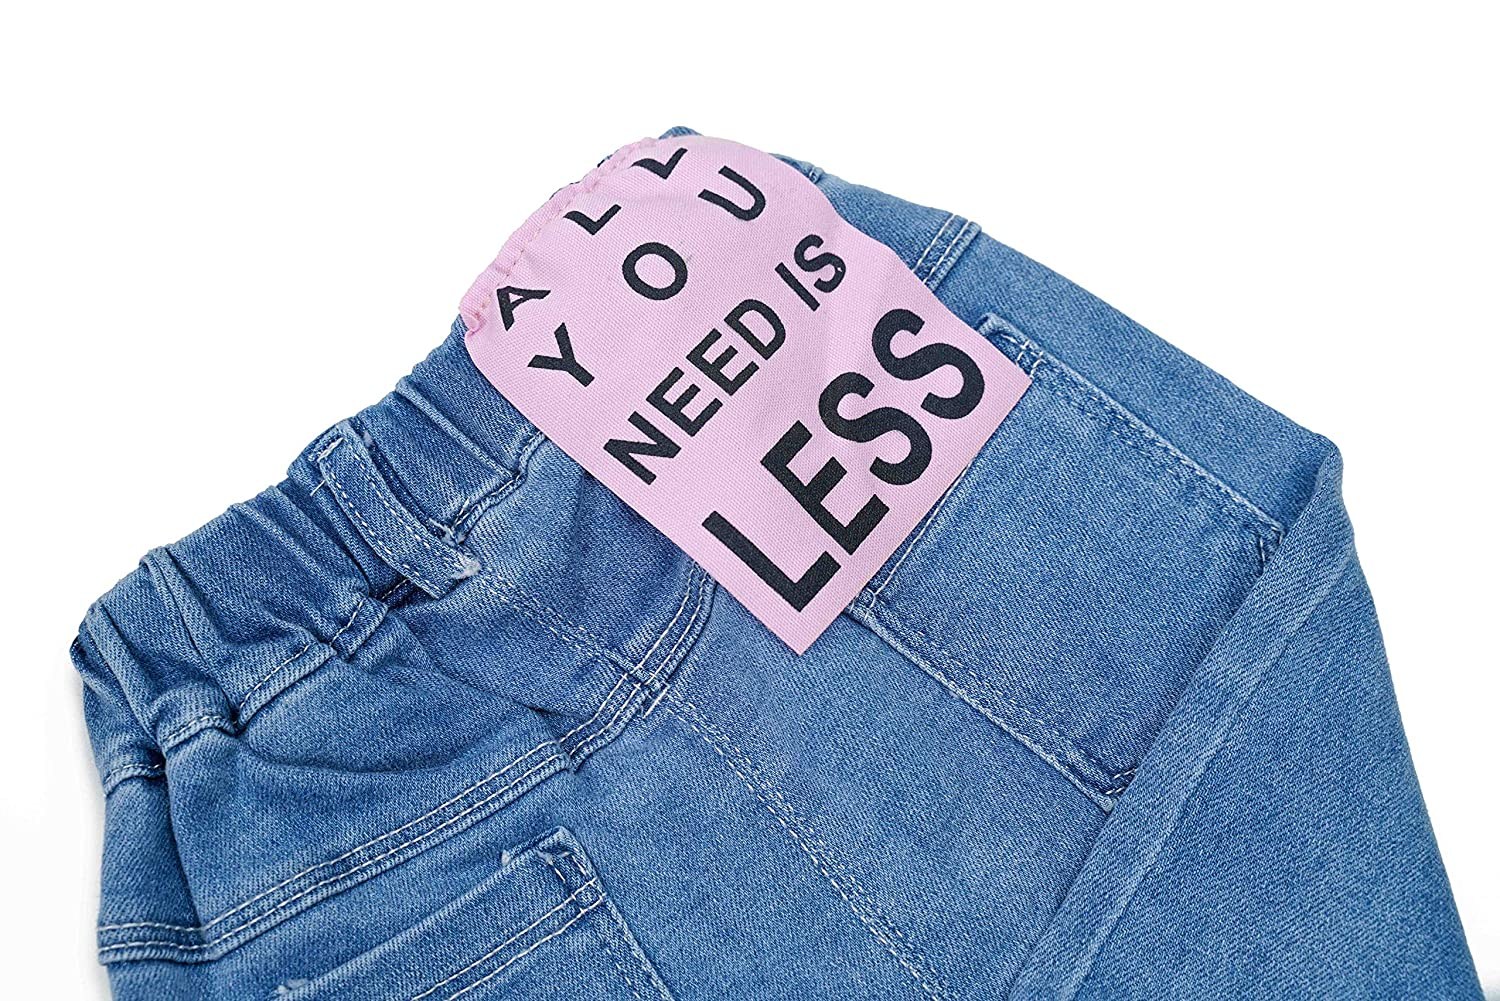 Girls Jeans Well-Crafted Good Looking Shrink Resistant Girls Jeans